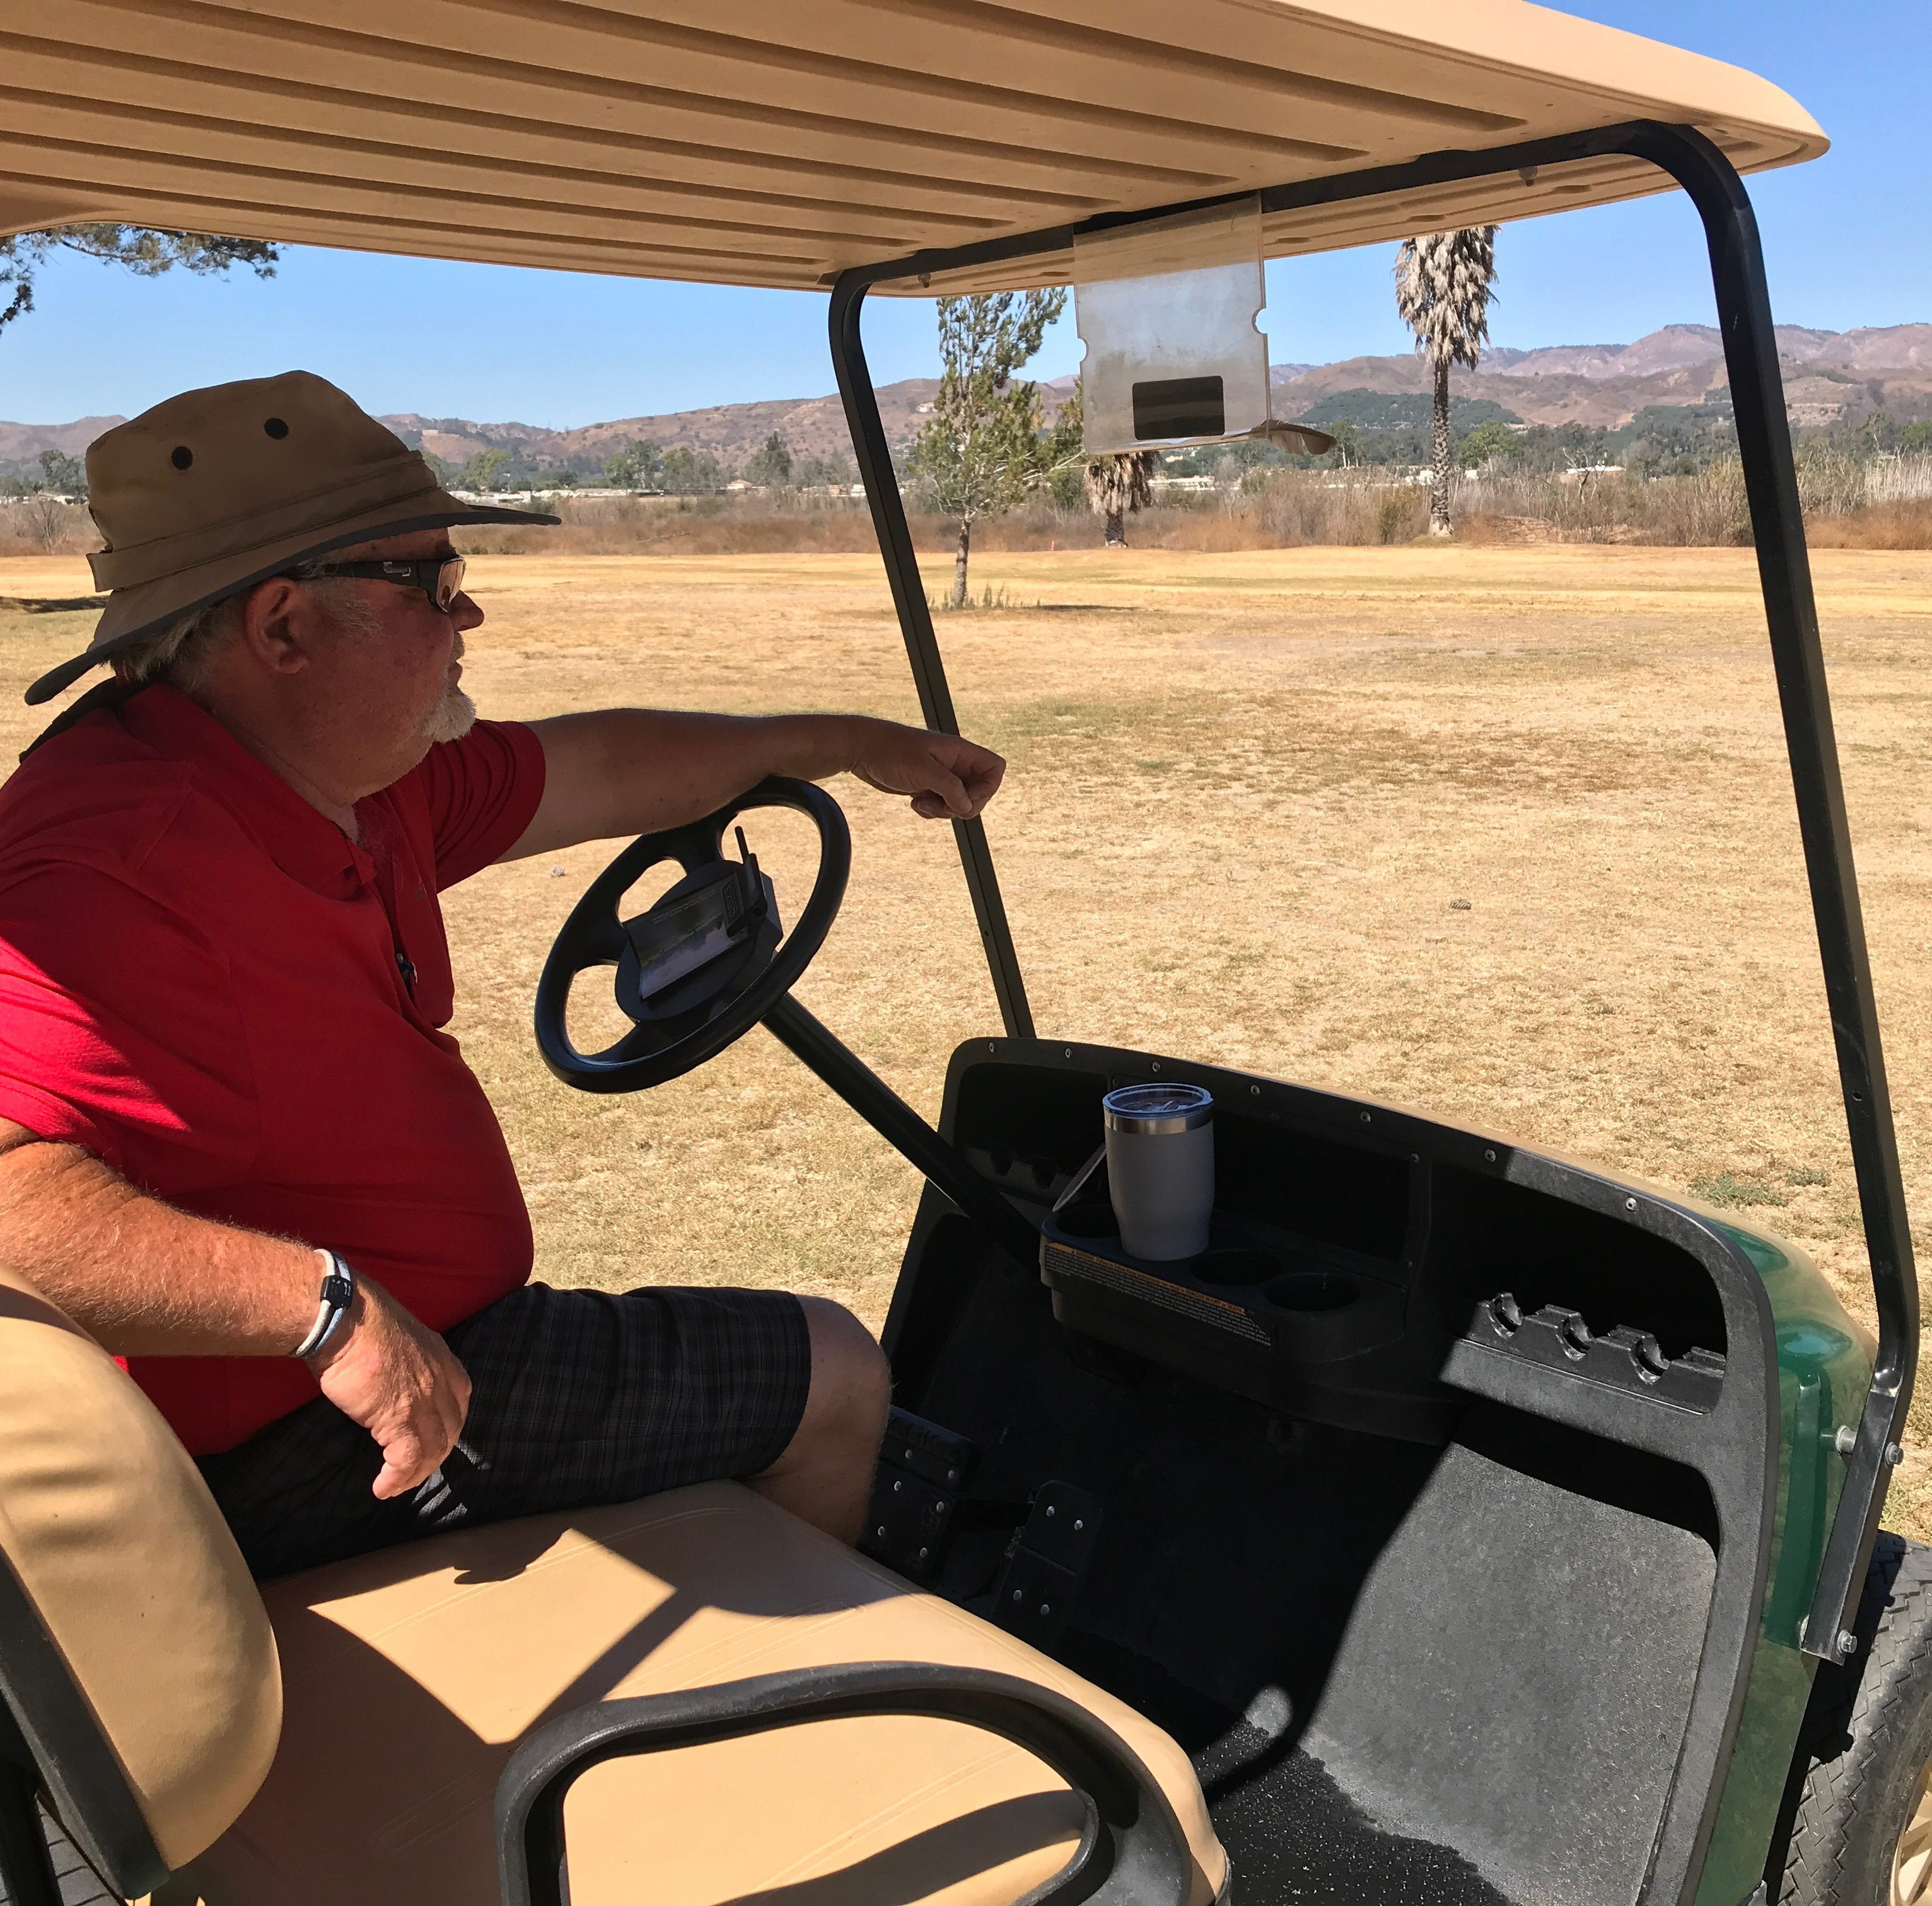 50-year-old Mountain View Golf Course is up for sale in Santa Paula